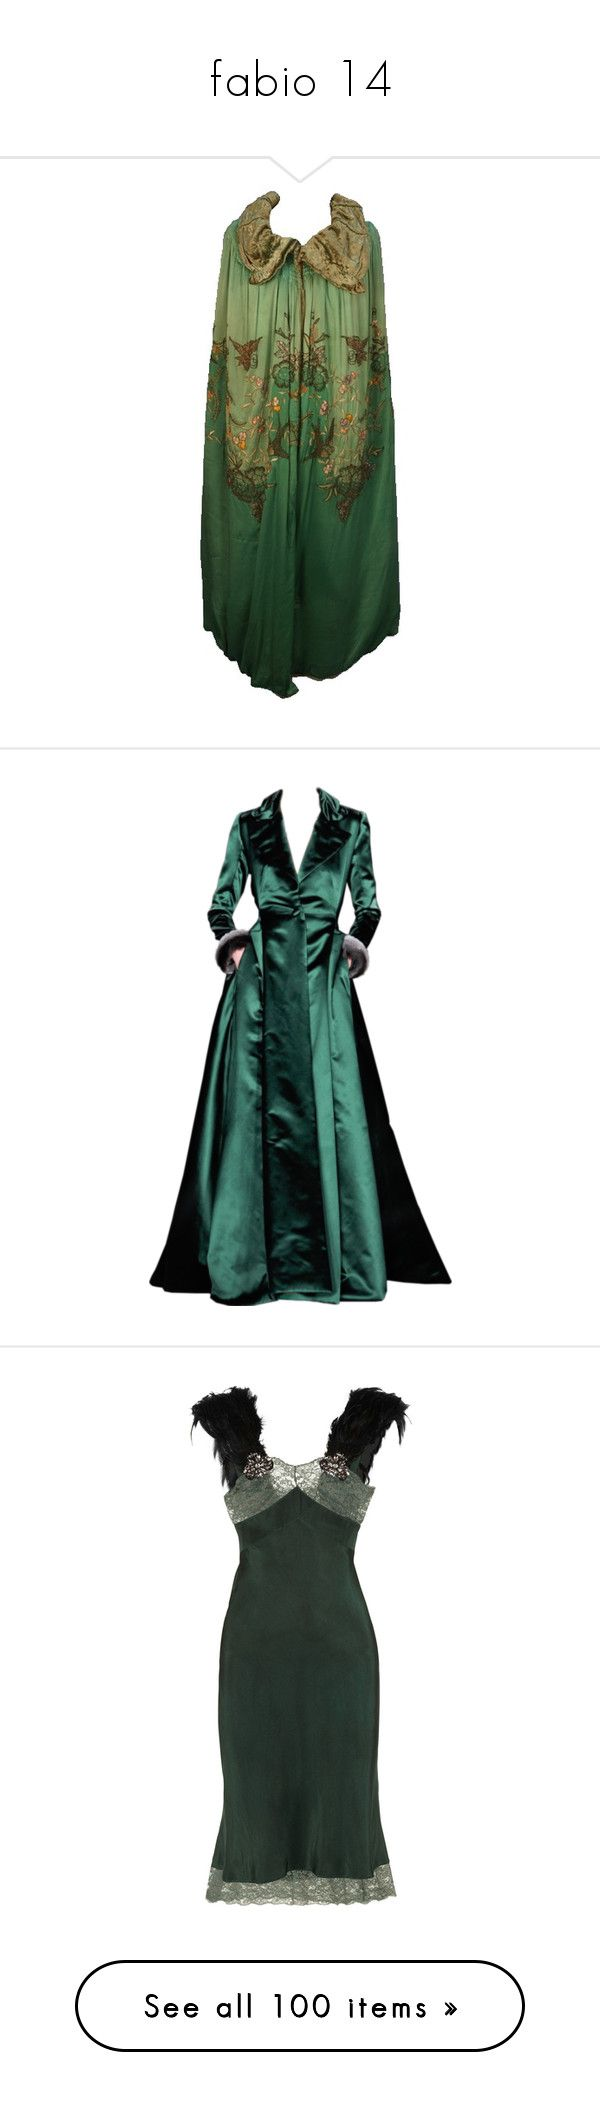 """""""fabio 14"""" by hogwartsdragoness ❤ liked on Polyvore featuring outerwear, cape, dresses, jackets, coats, gowns, long dress, vestidos, green color dress and green ball gown"""